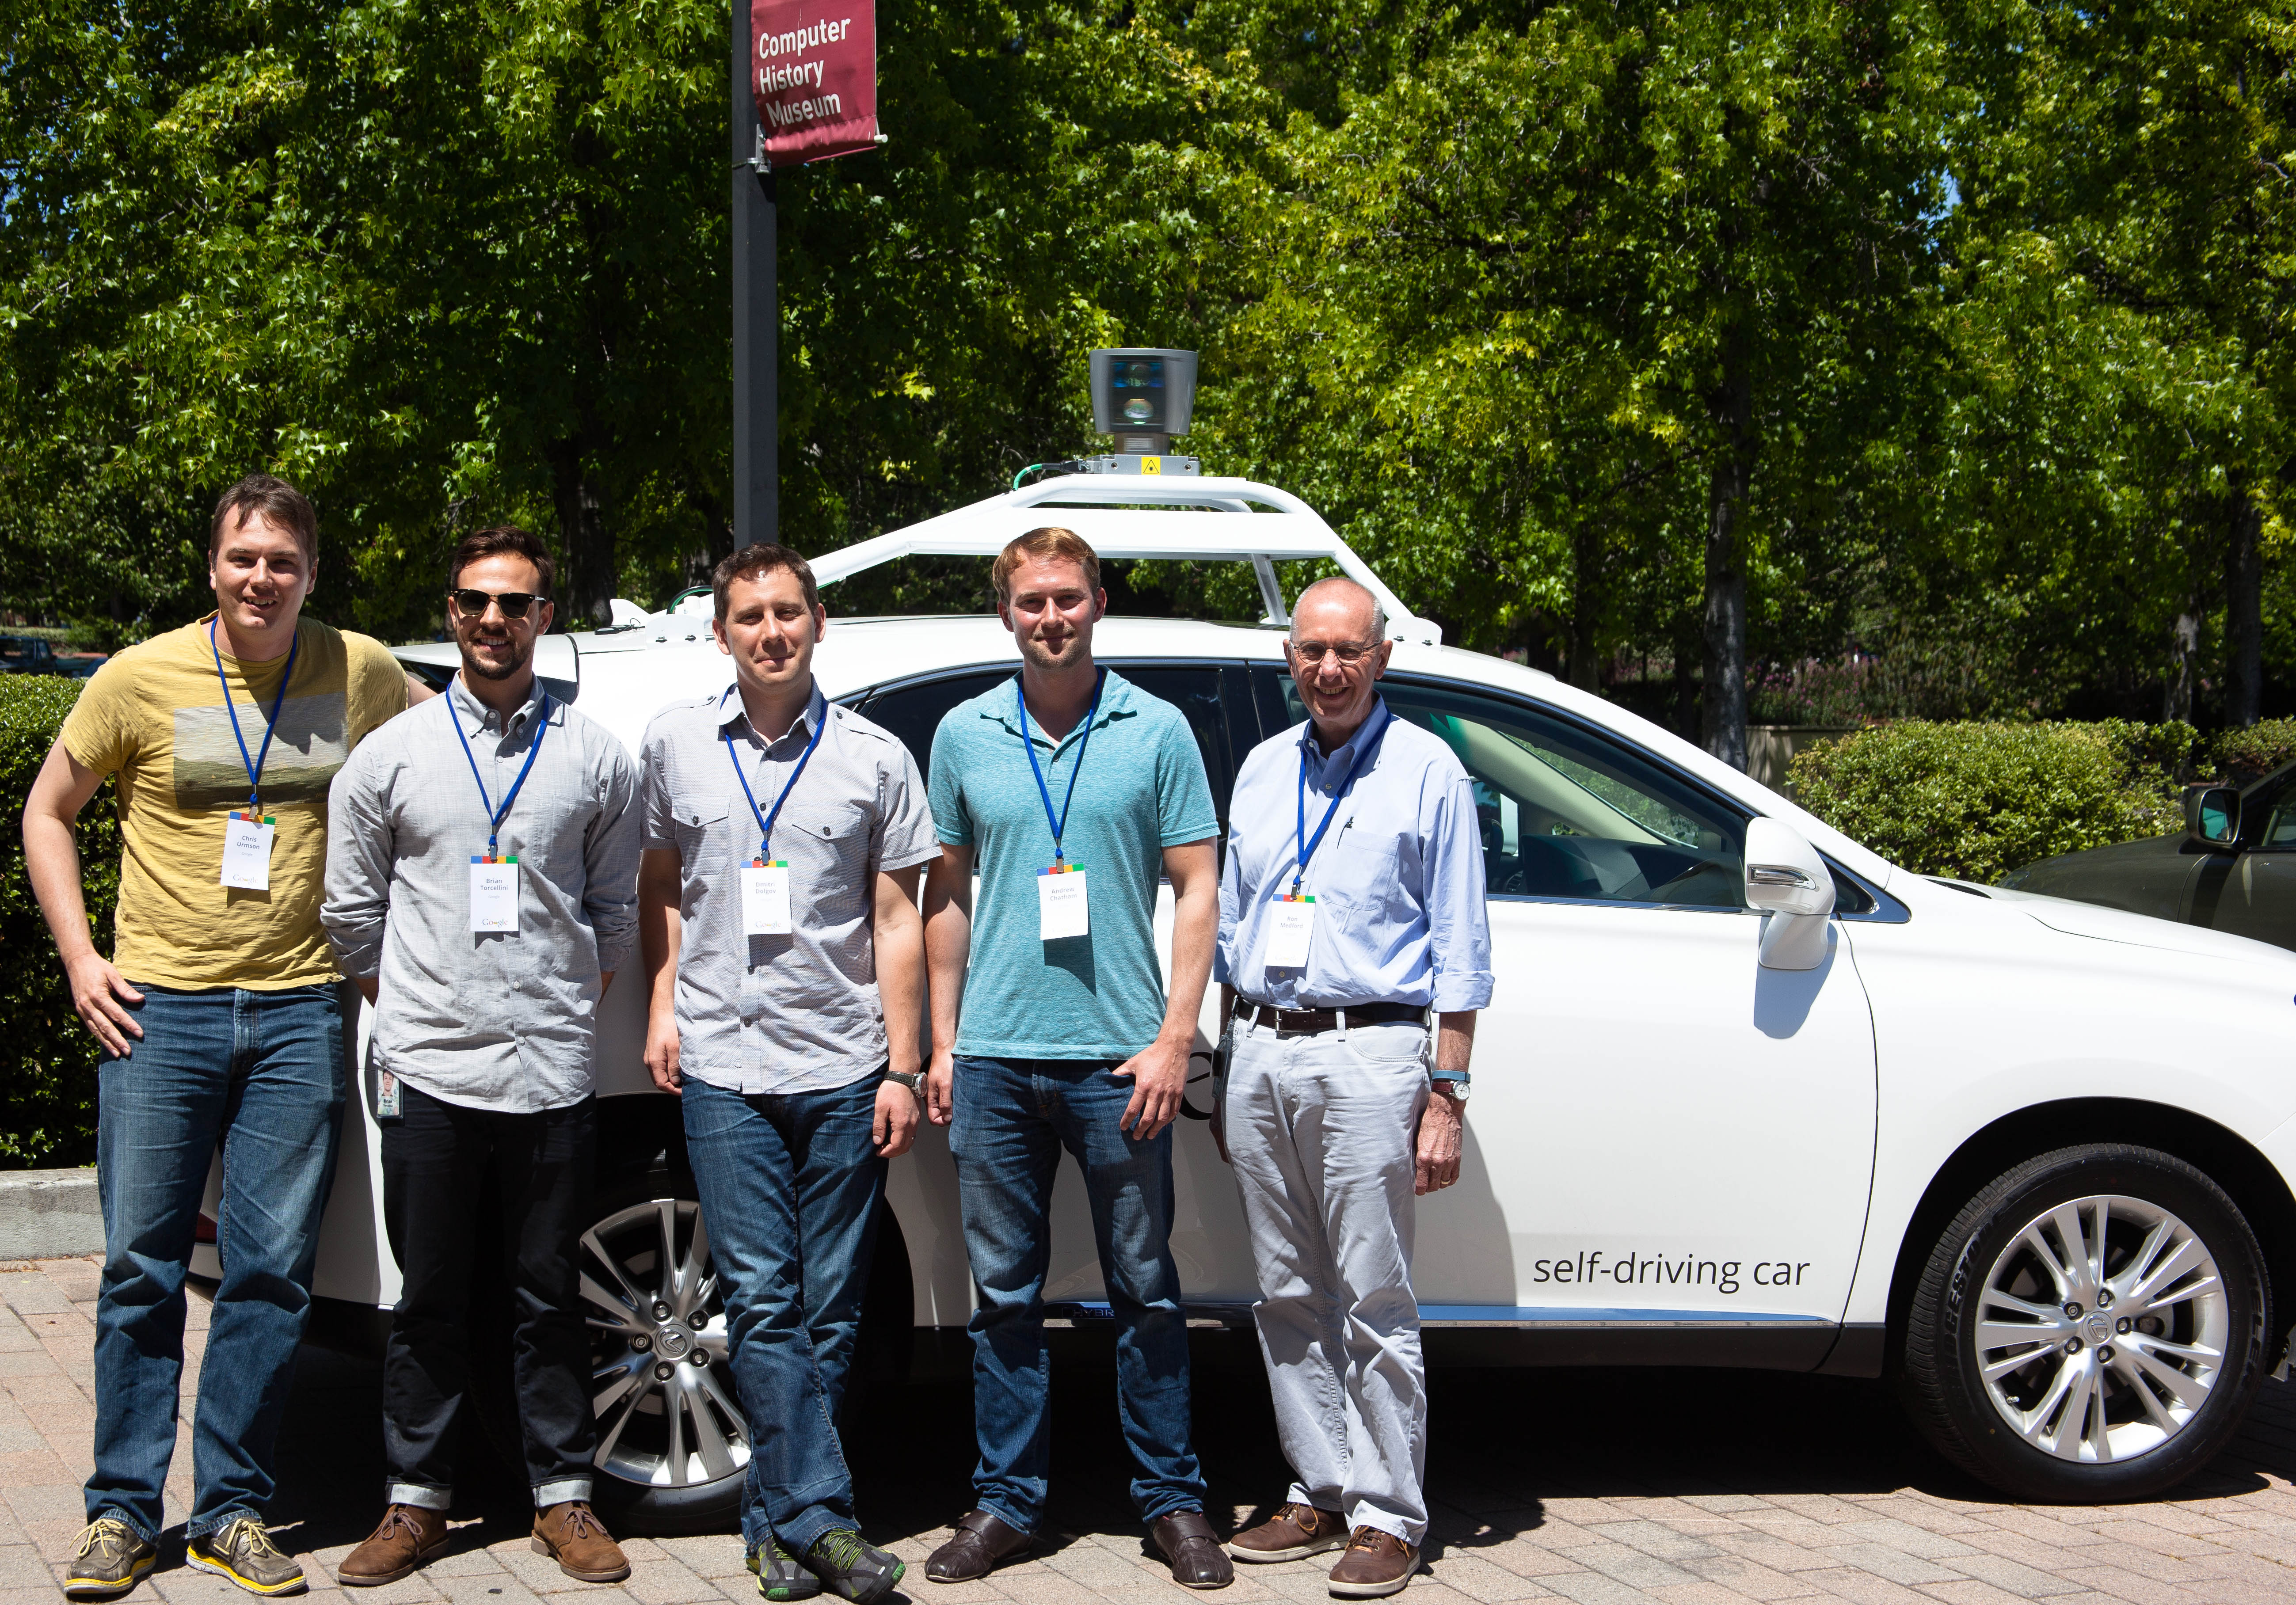 2014-05-13-google-self-driving-car-1.jpg